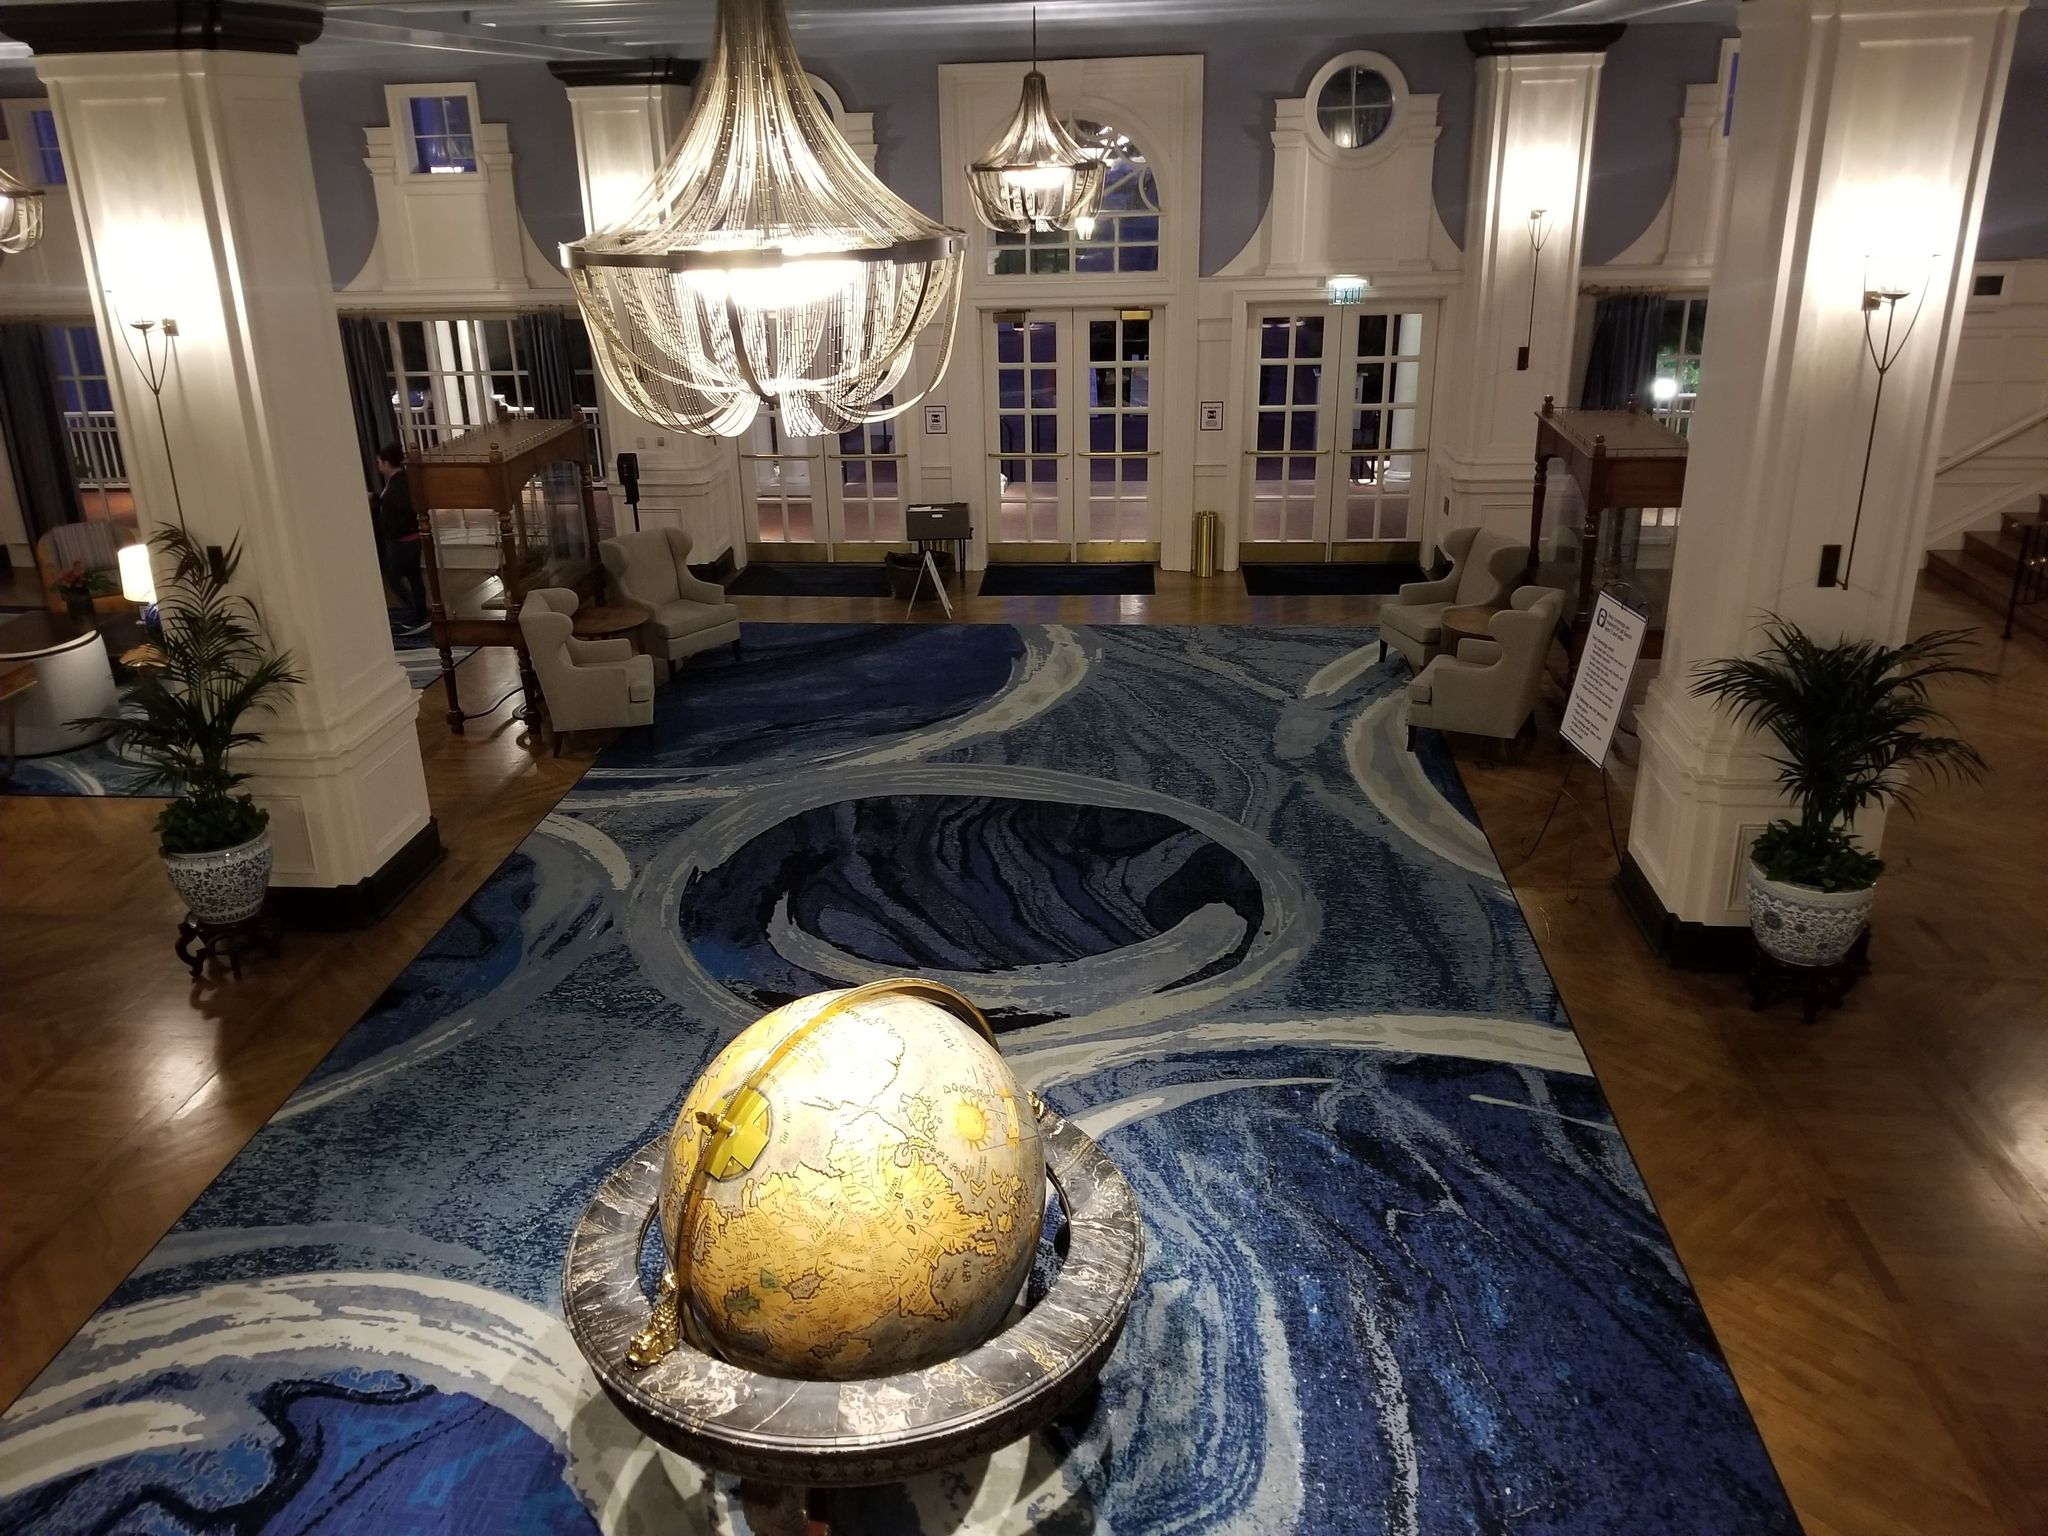 Disney's Beach Club Resort lobby with globe